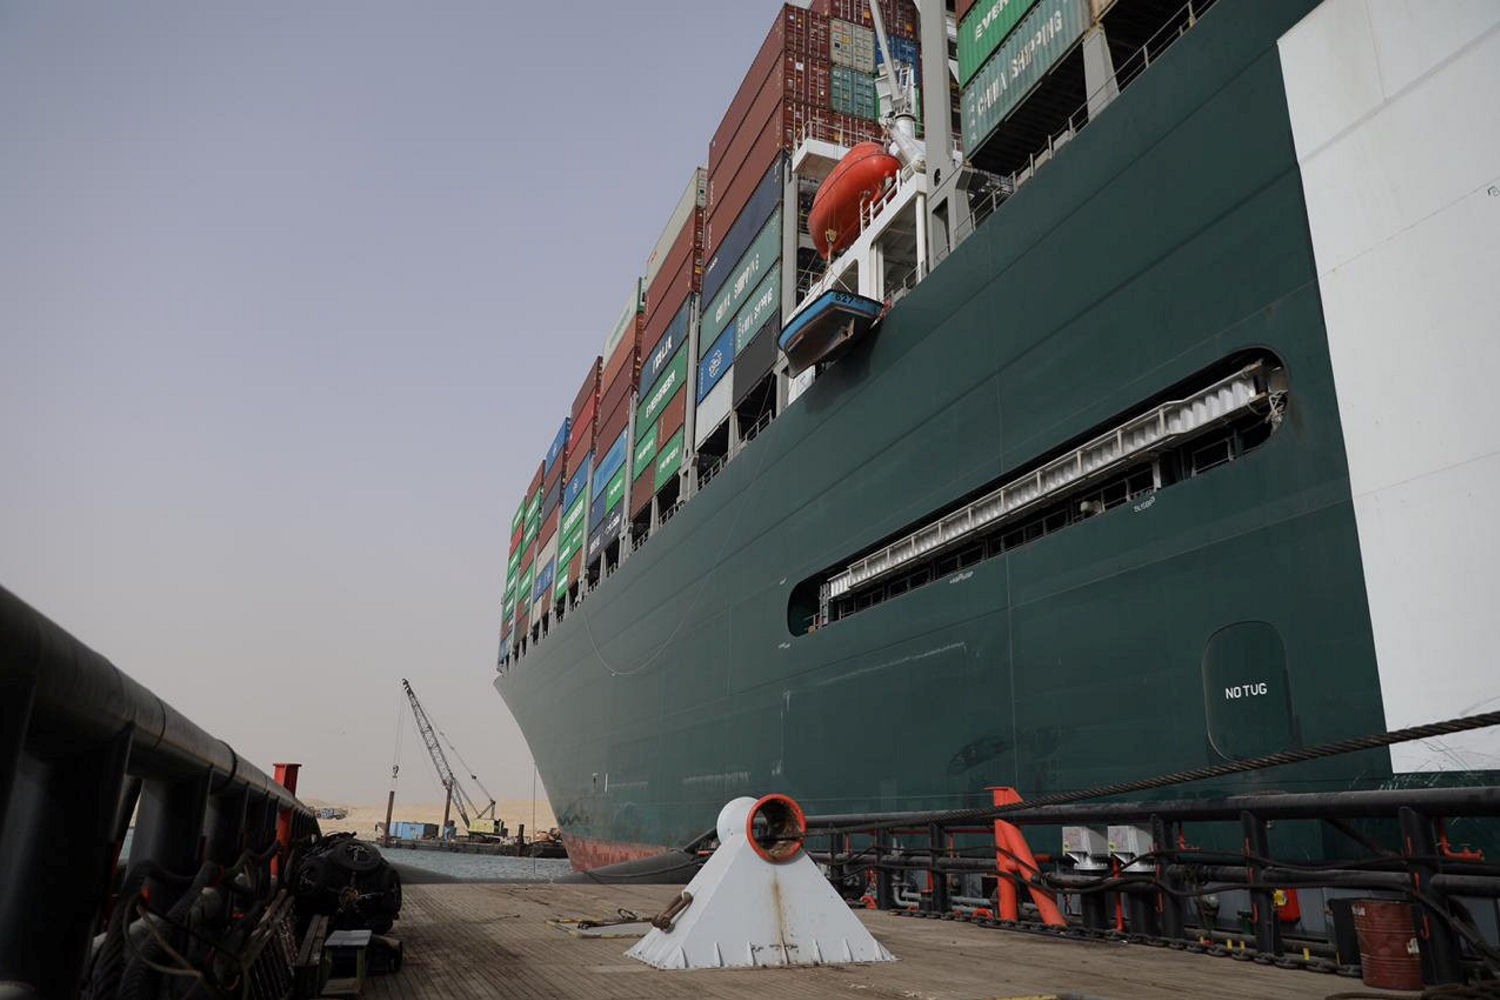 Grounded Suez Canal ship puts automotive industry at risk